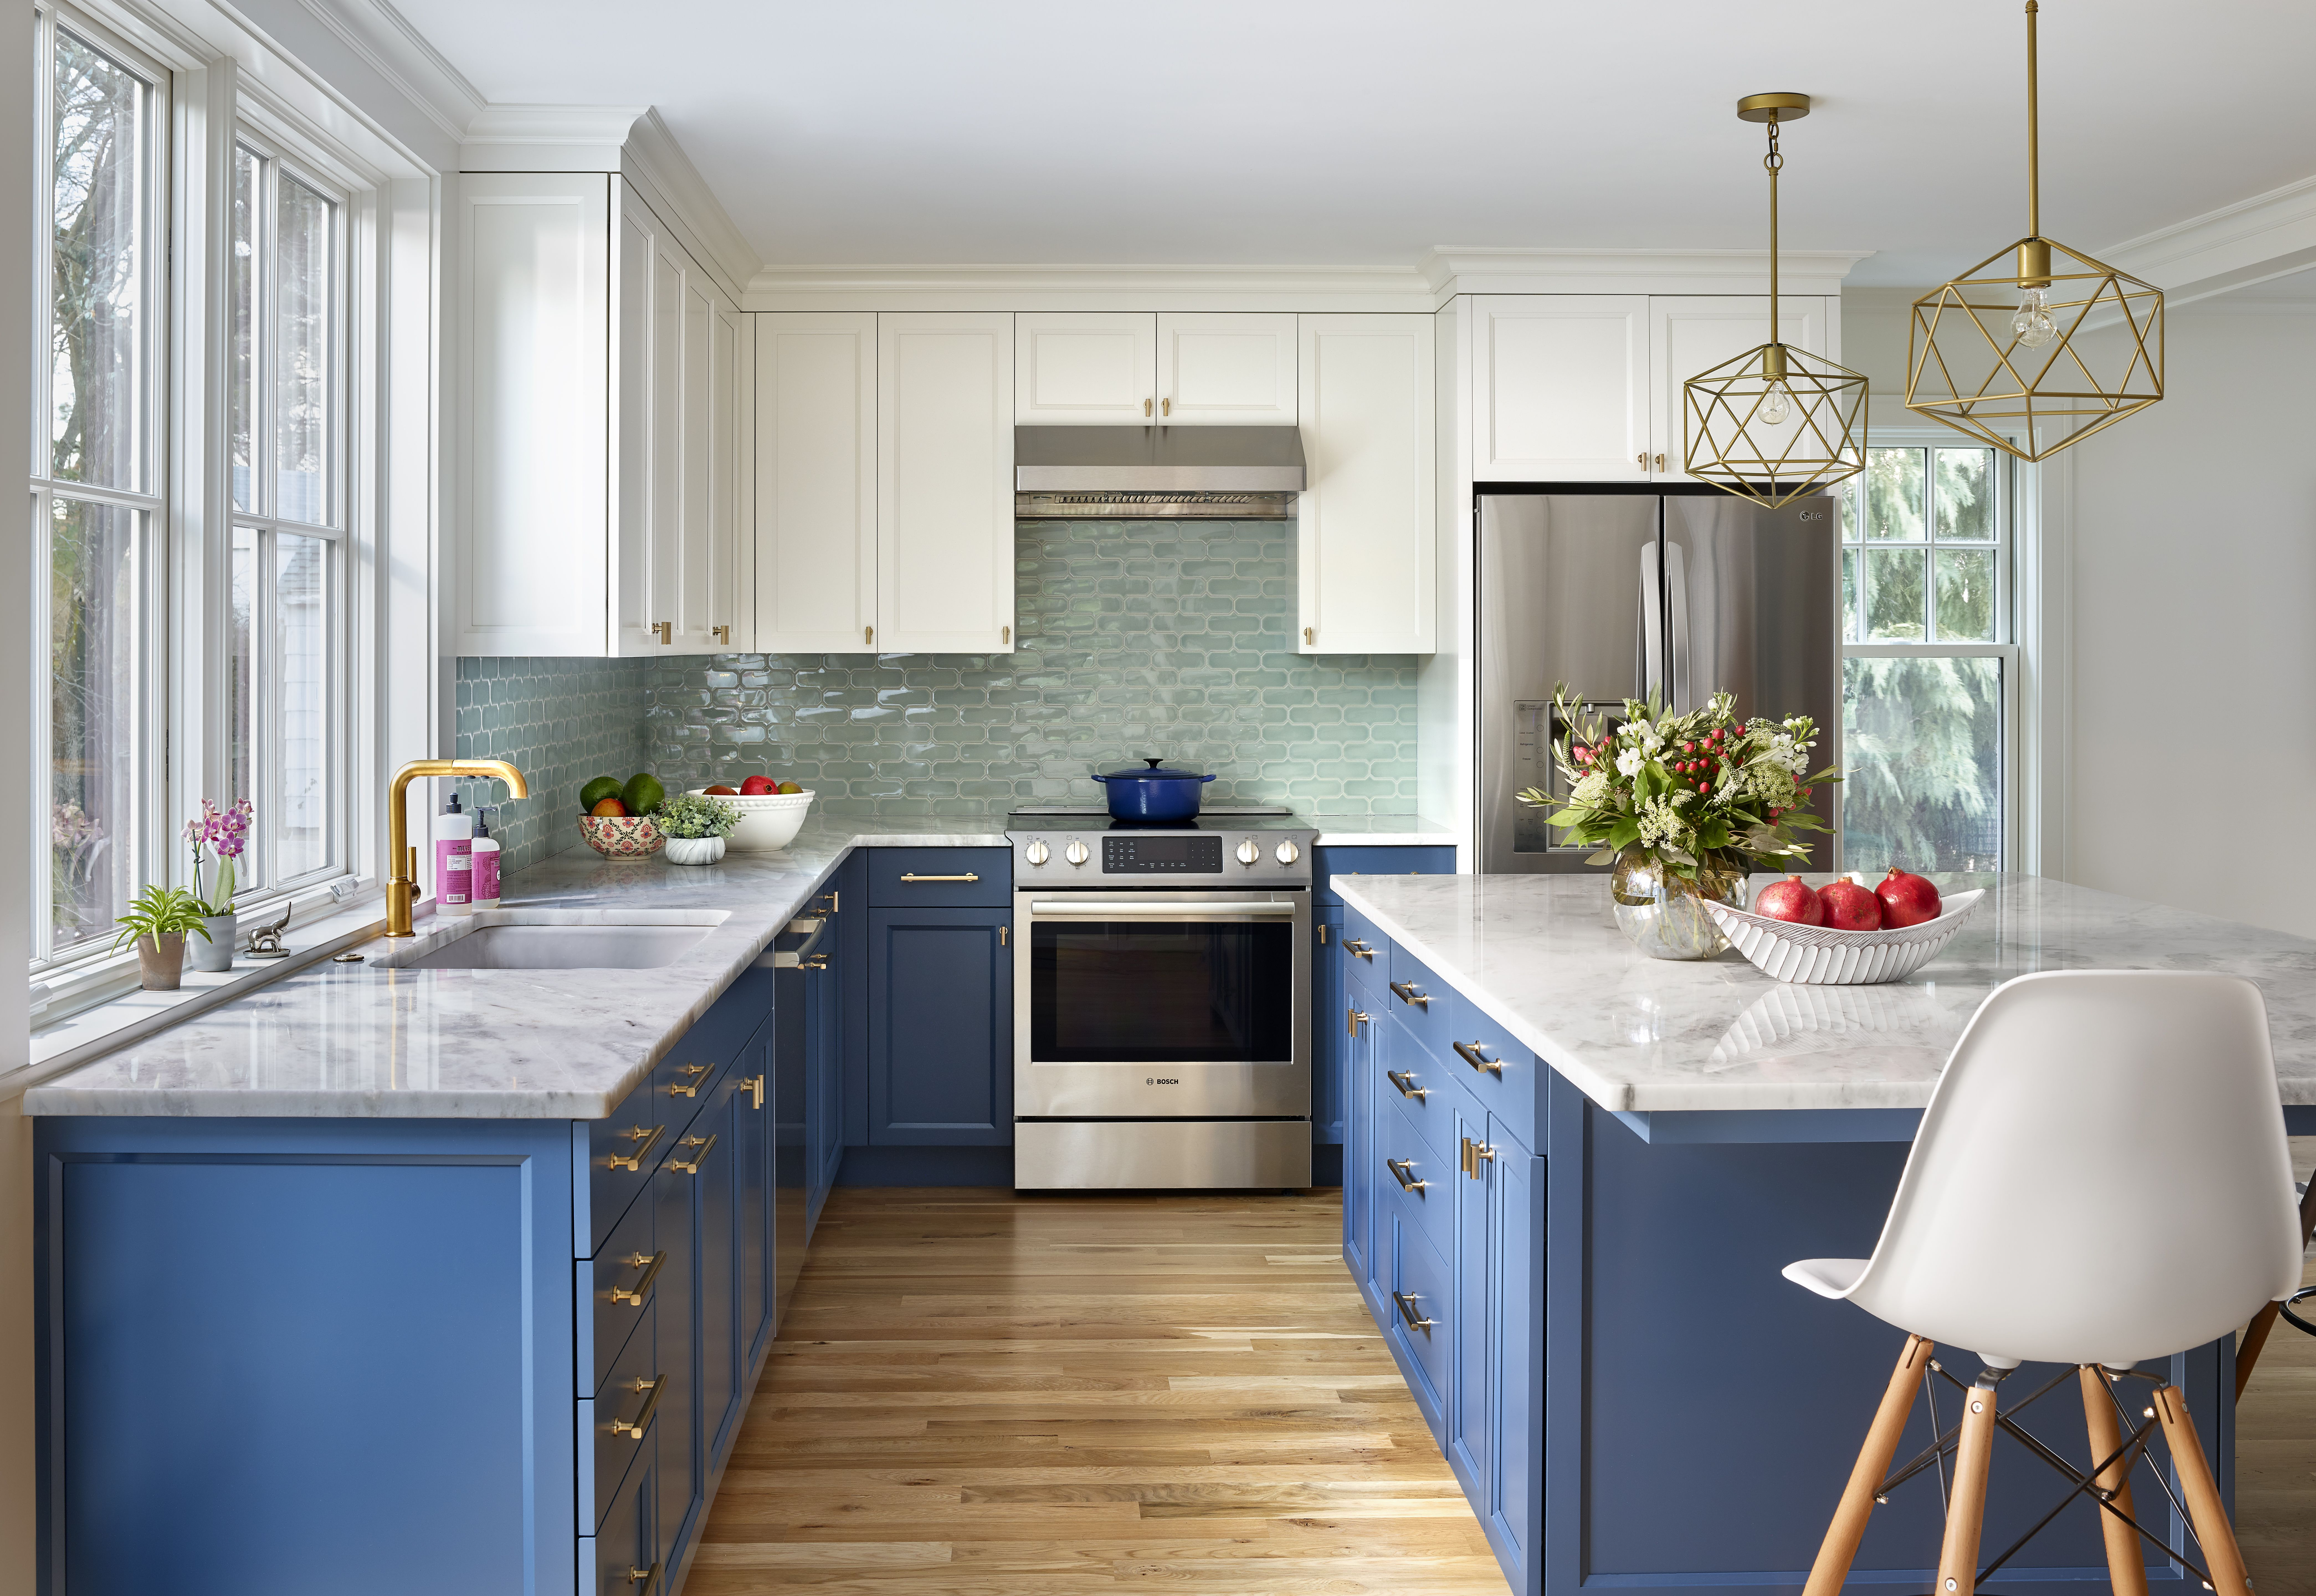 Home Design Ideas: How To Make Color Work In An Open Kitchen - The Boston Globe